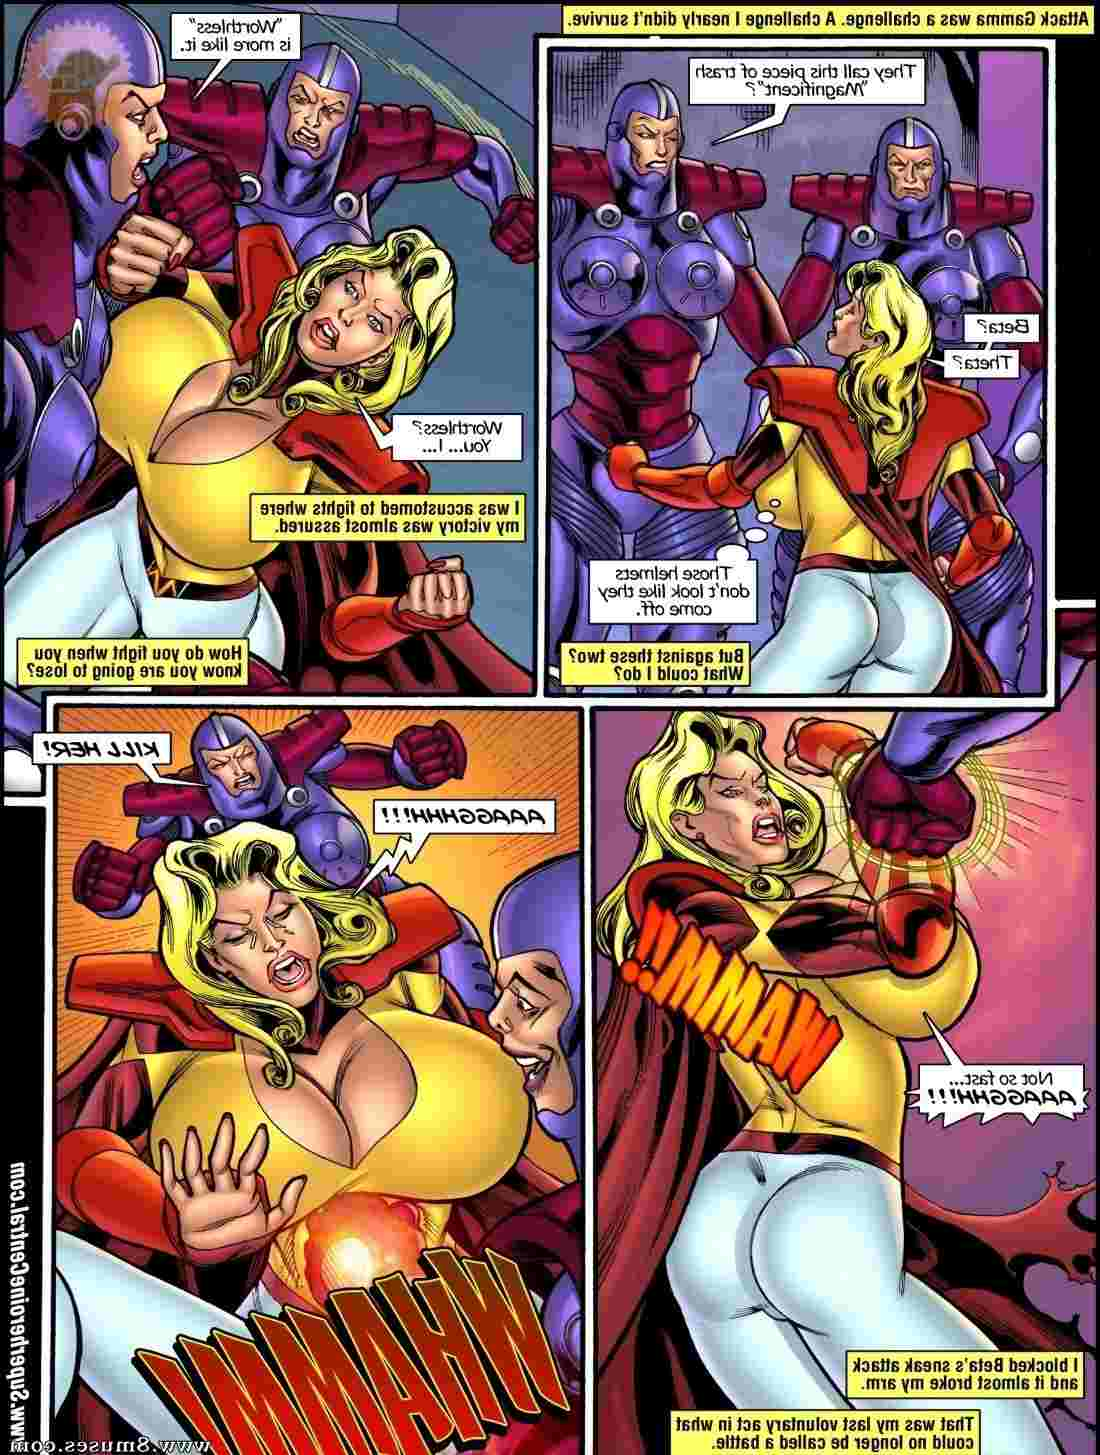 SuperHeroineComixxx/Mighty-cow Mighty_cow__8muses_-_Sex_and_Porn_Comics_42.jpg